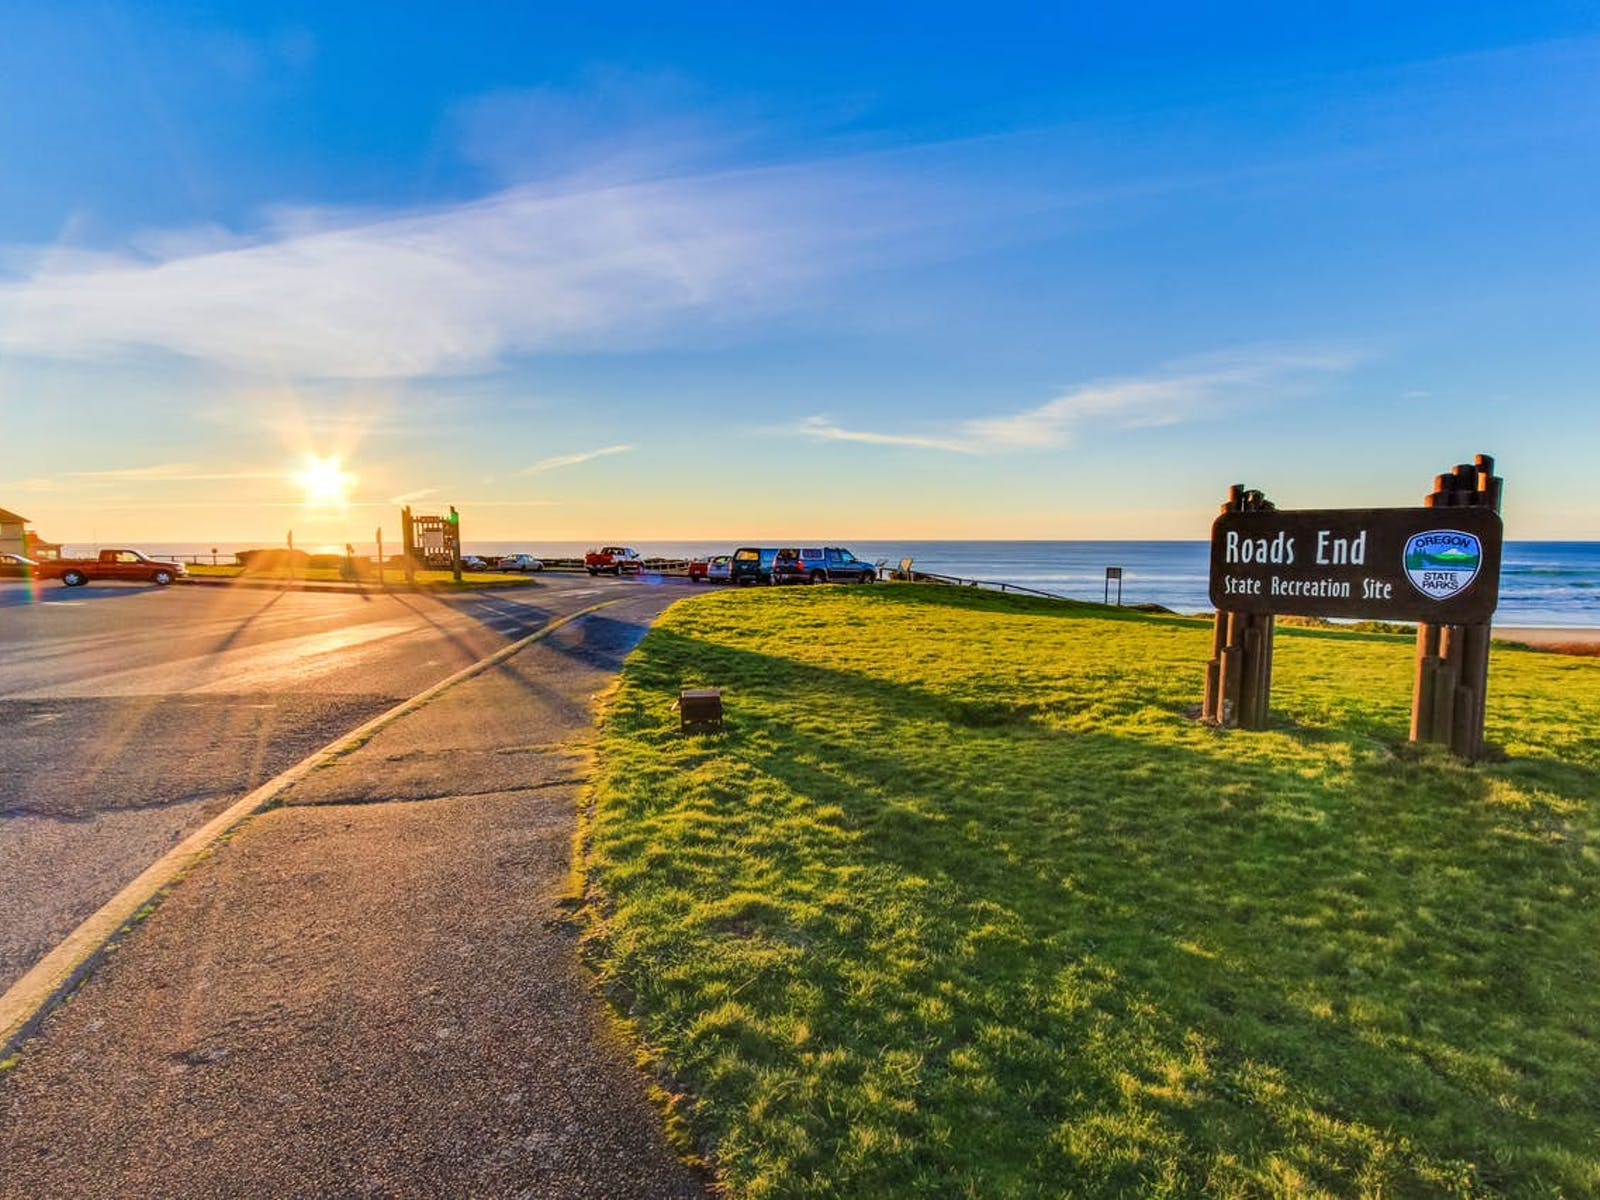 Roads End State Recreation Site located in Lincoln City